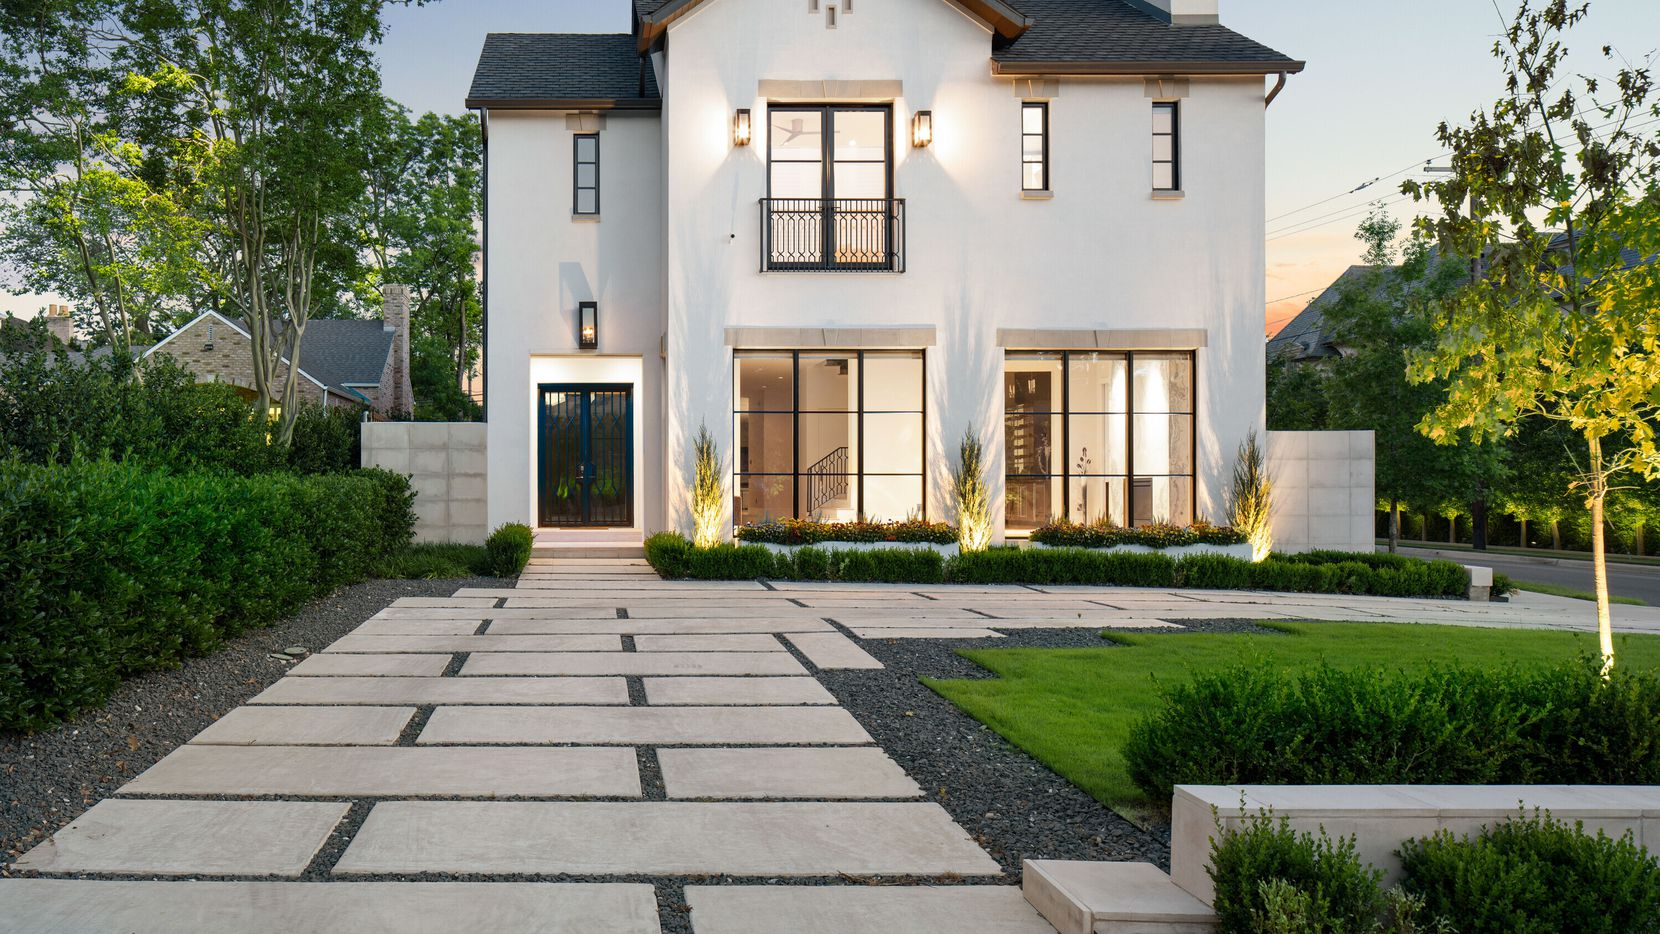 Take a look at the home at 3737 Normandy Ave. in Highland Park.